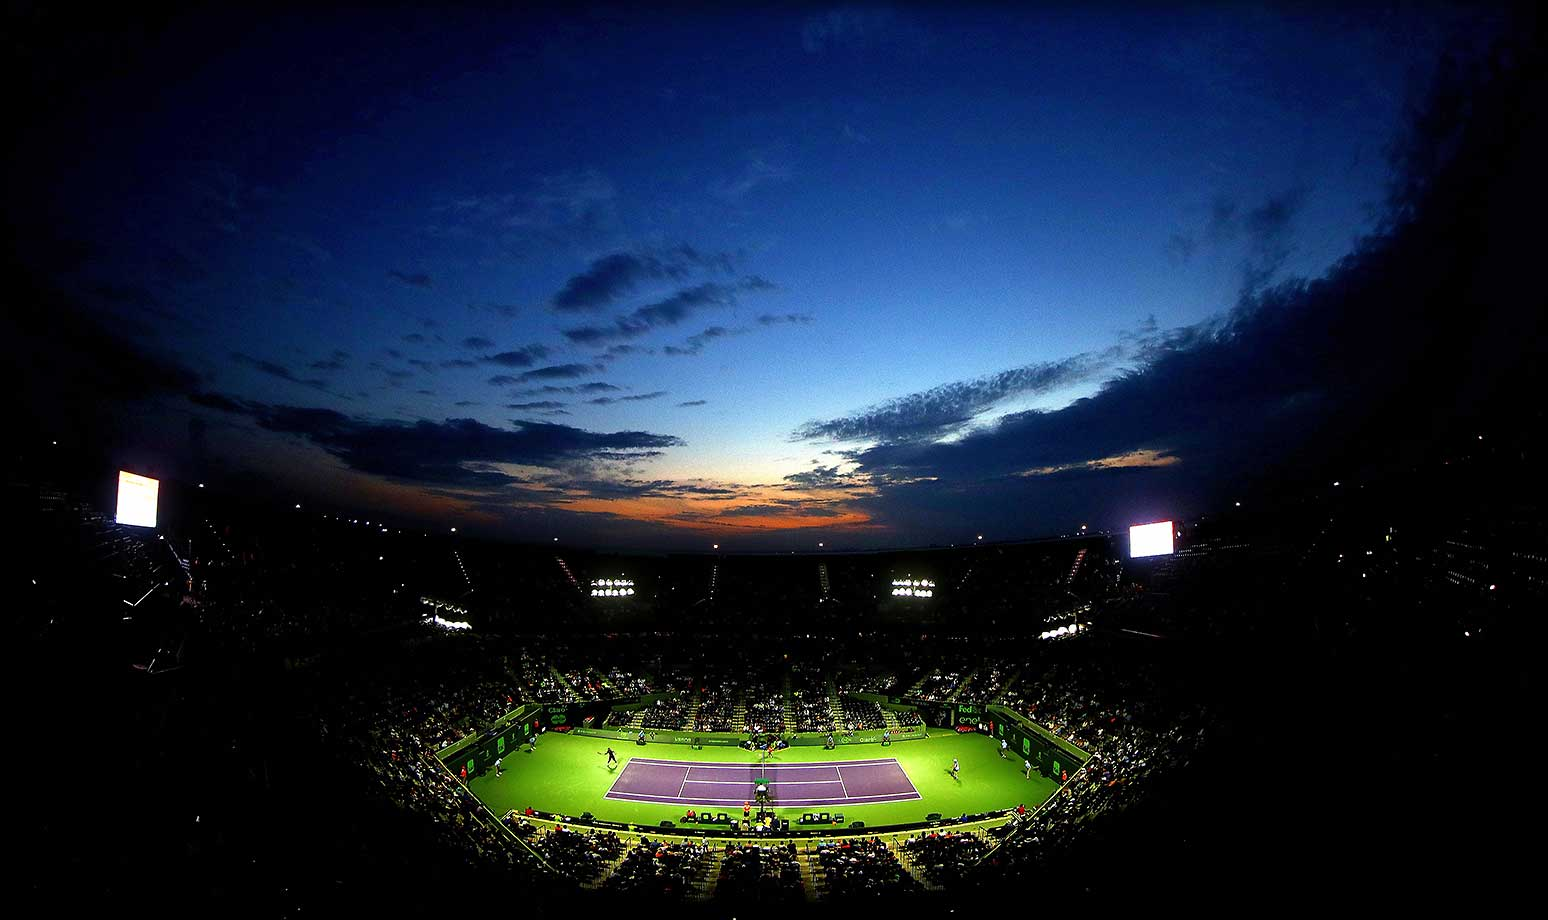 A general view of Stadium Court during Day 8 of the Miami Open.